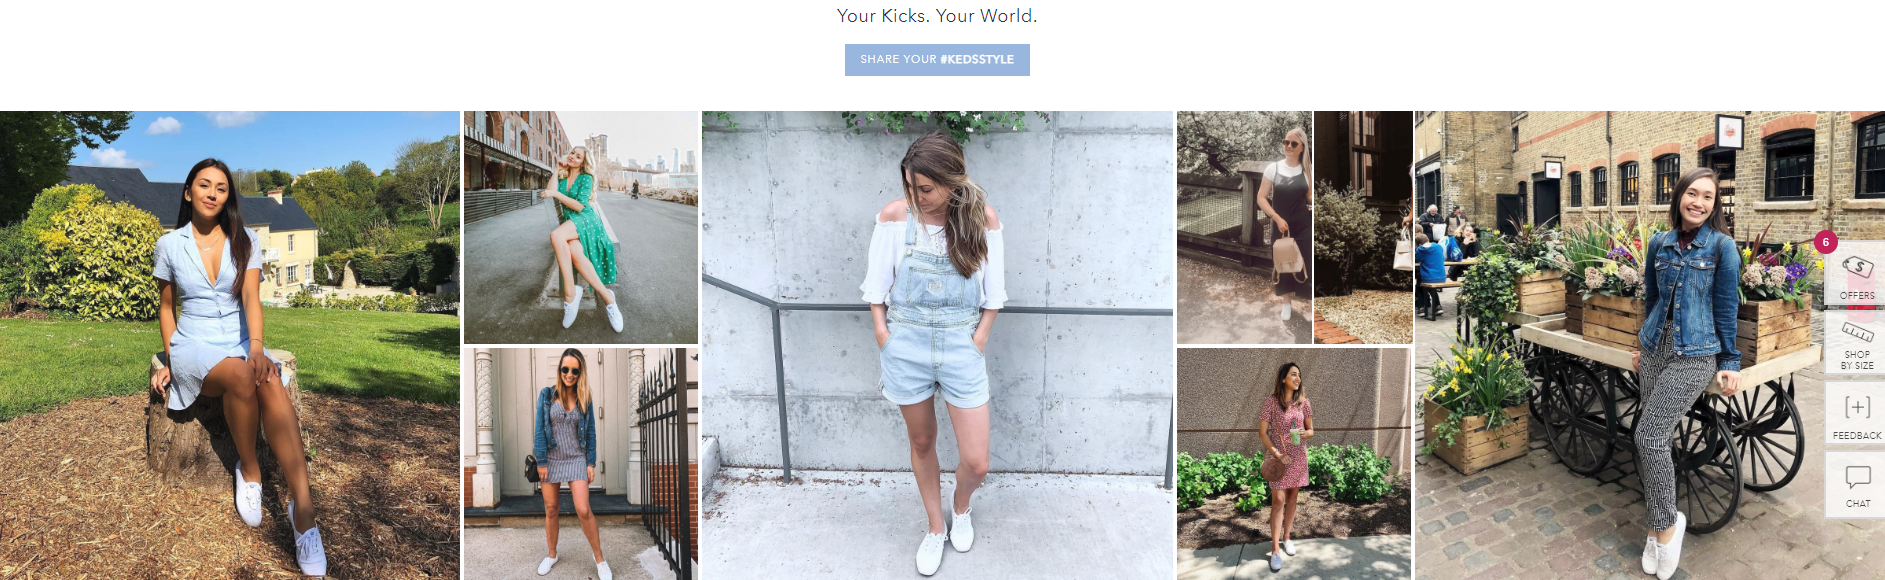 Keds features a lookbook of user-generated content on-site to increase their social media conversions